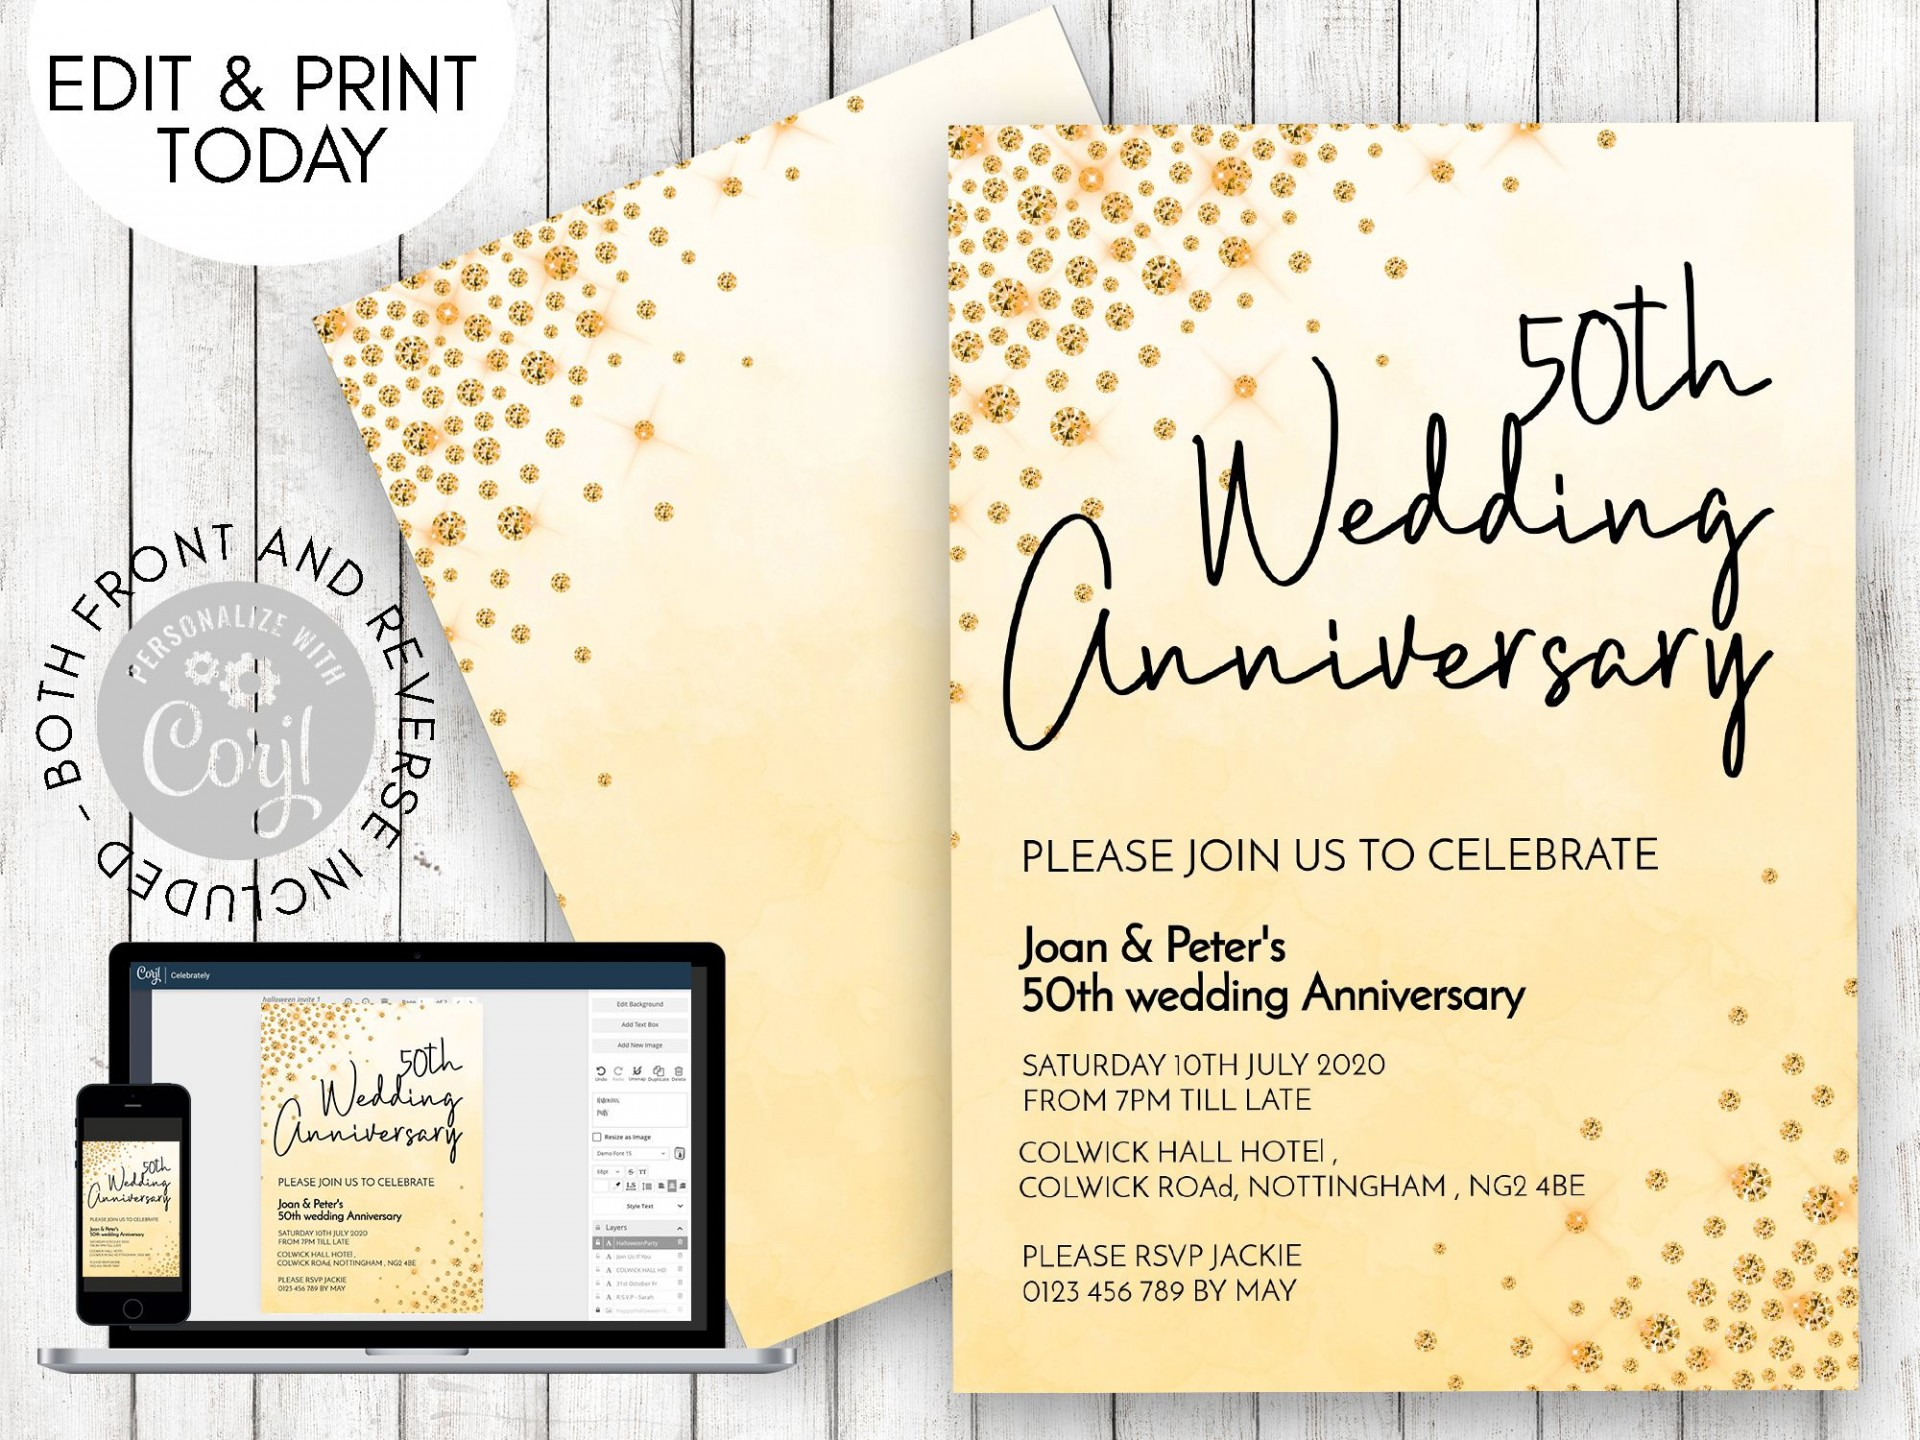 001 Excellent 50th Wedding Anniversary Party Invitation Template High Resolution  Templates Free1920